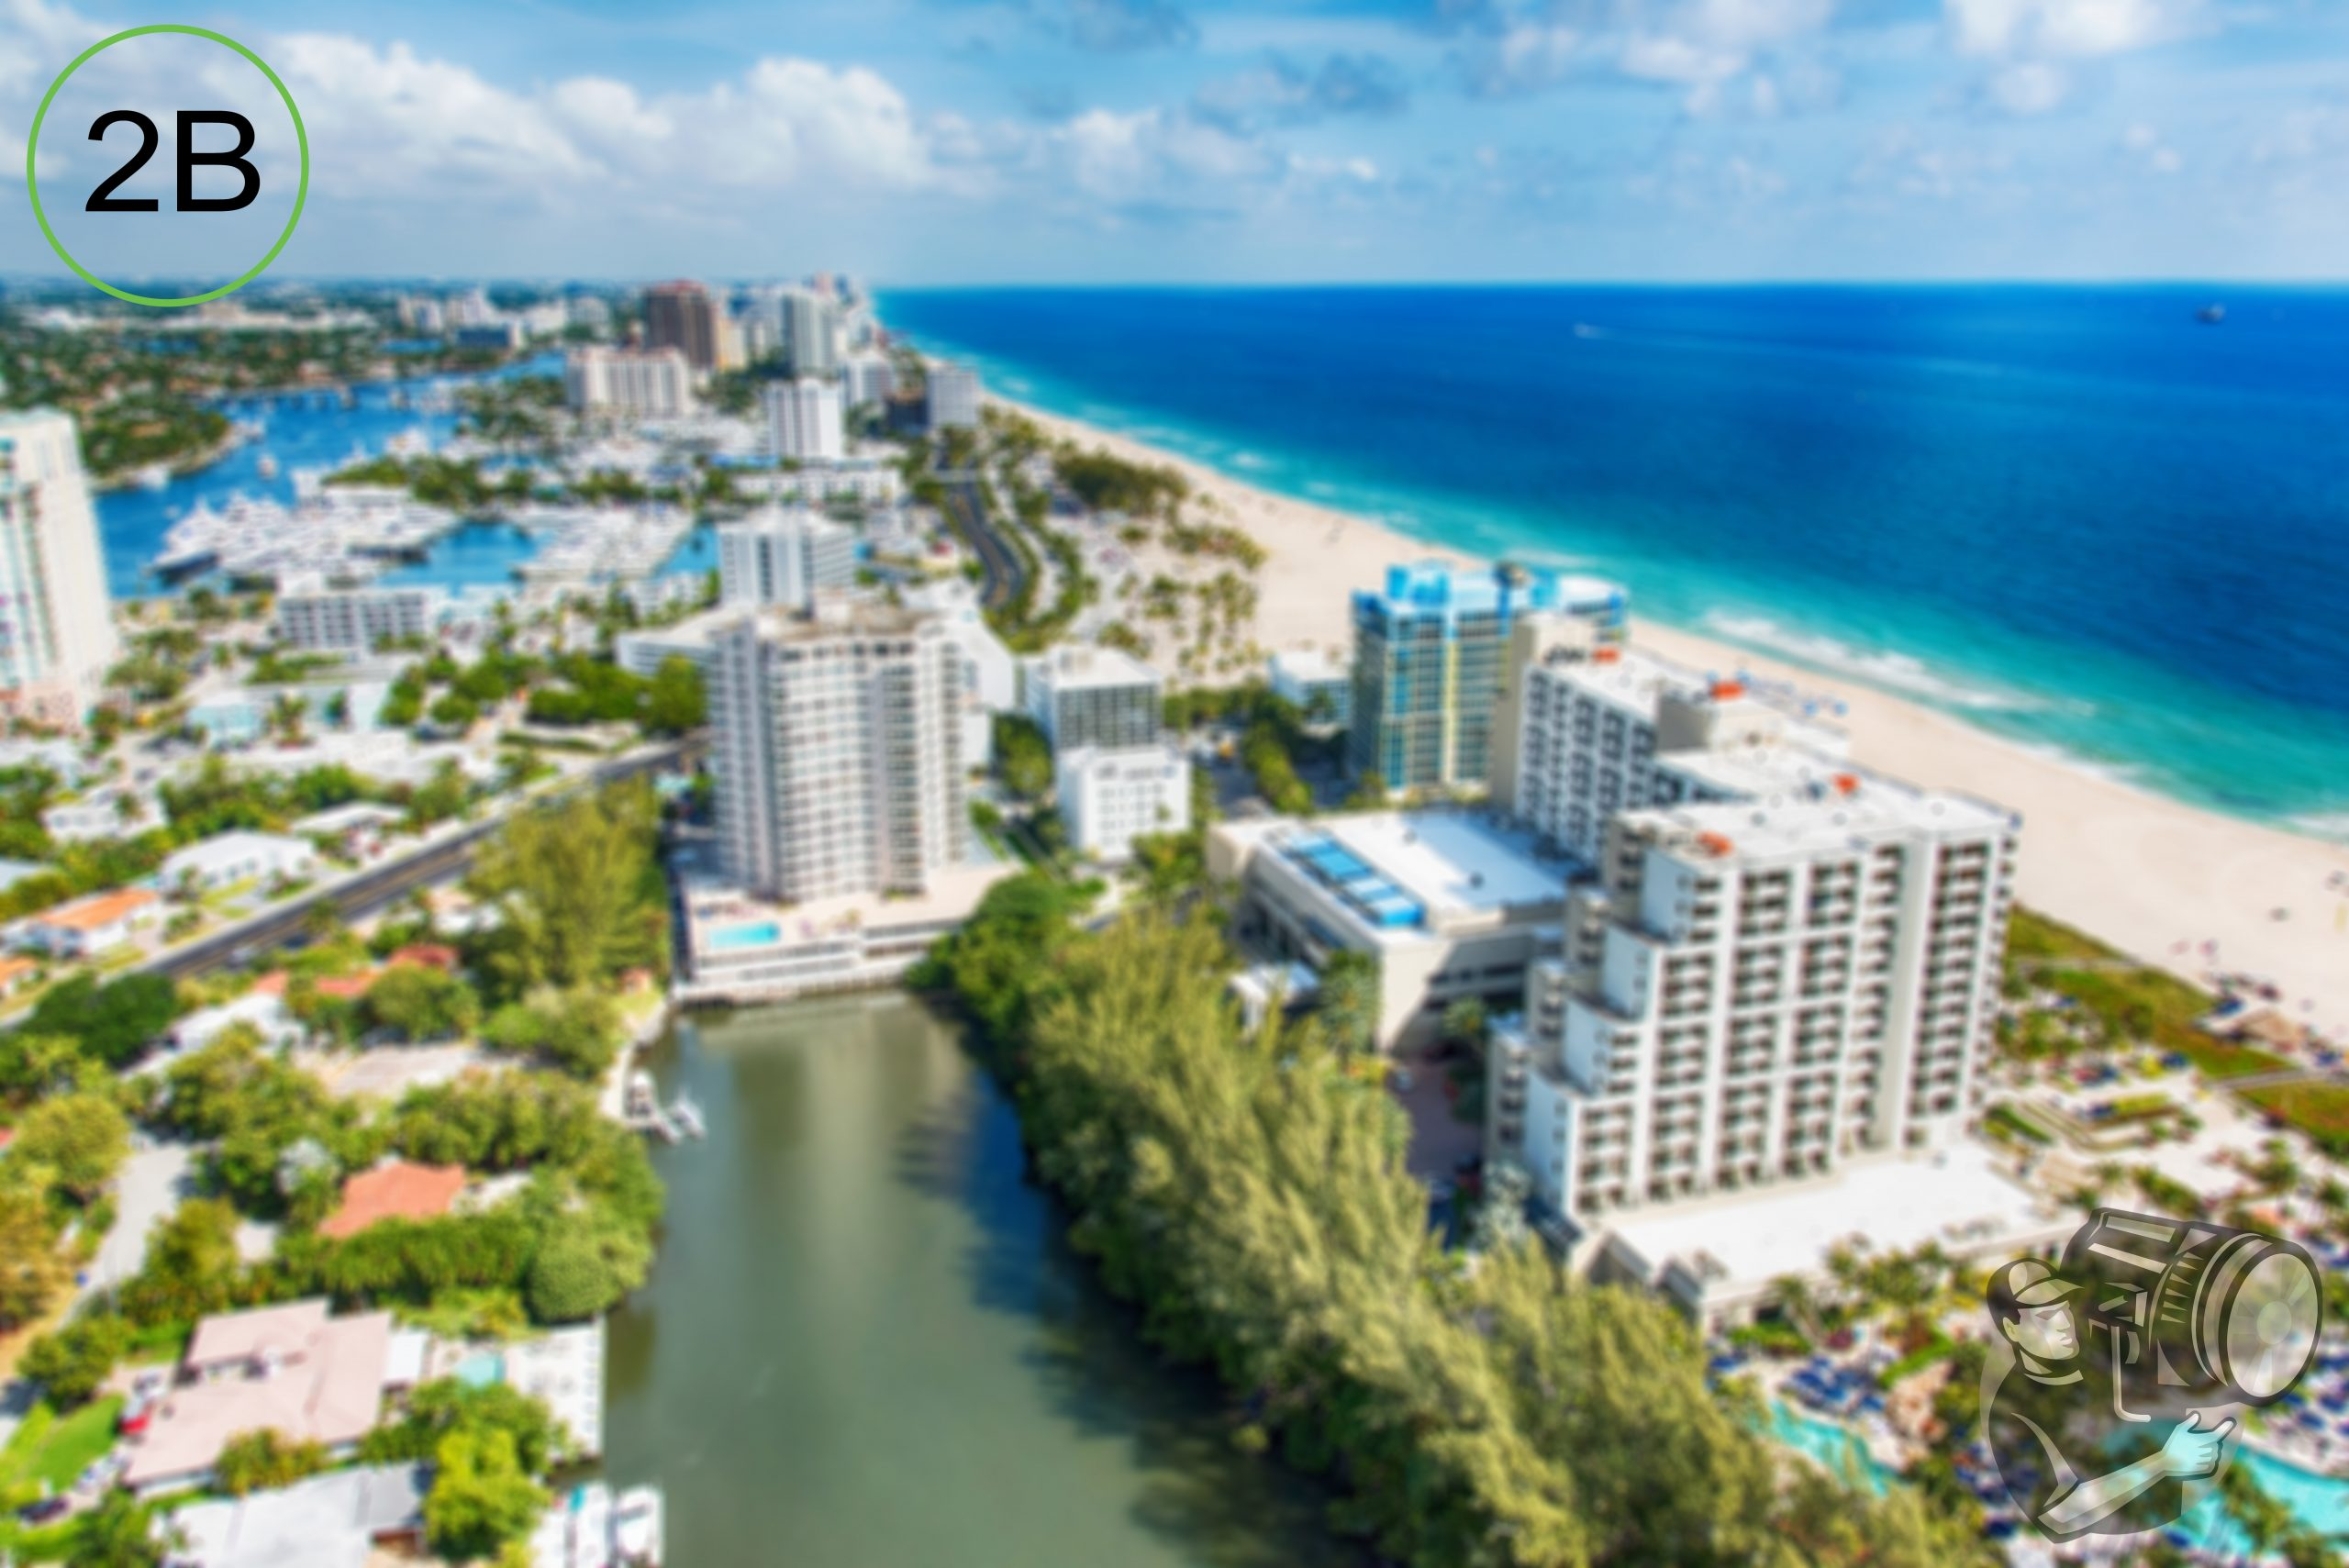 Aerial View of Ft. Lauderdale, Florida